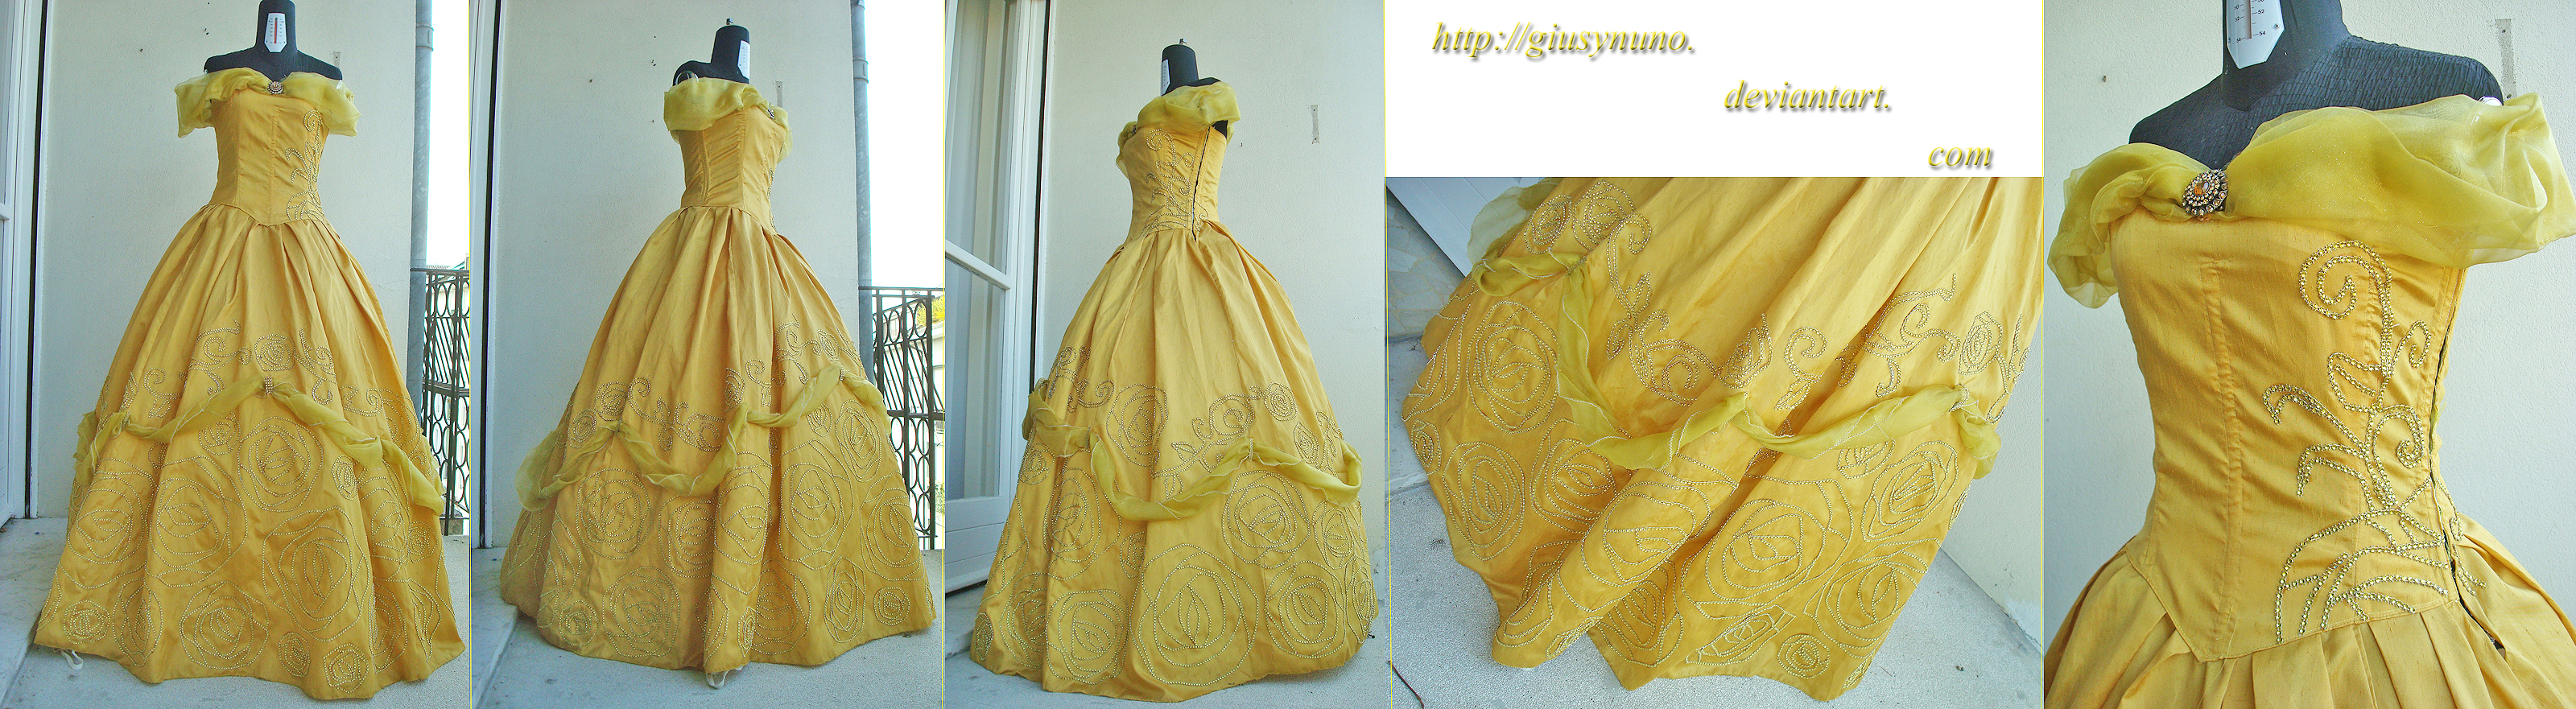 Belle (new Disney Princesses concept) - BatB by giusynuno